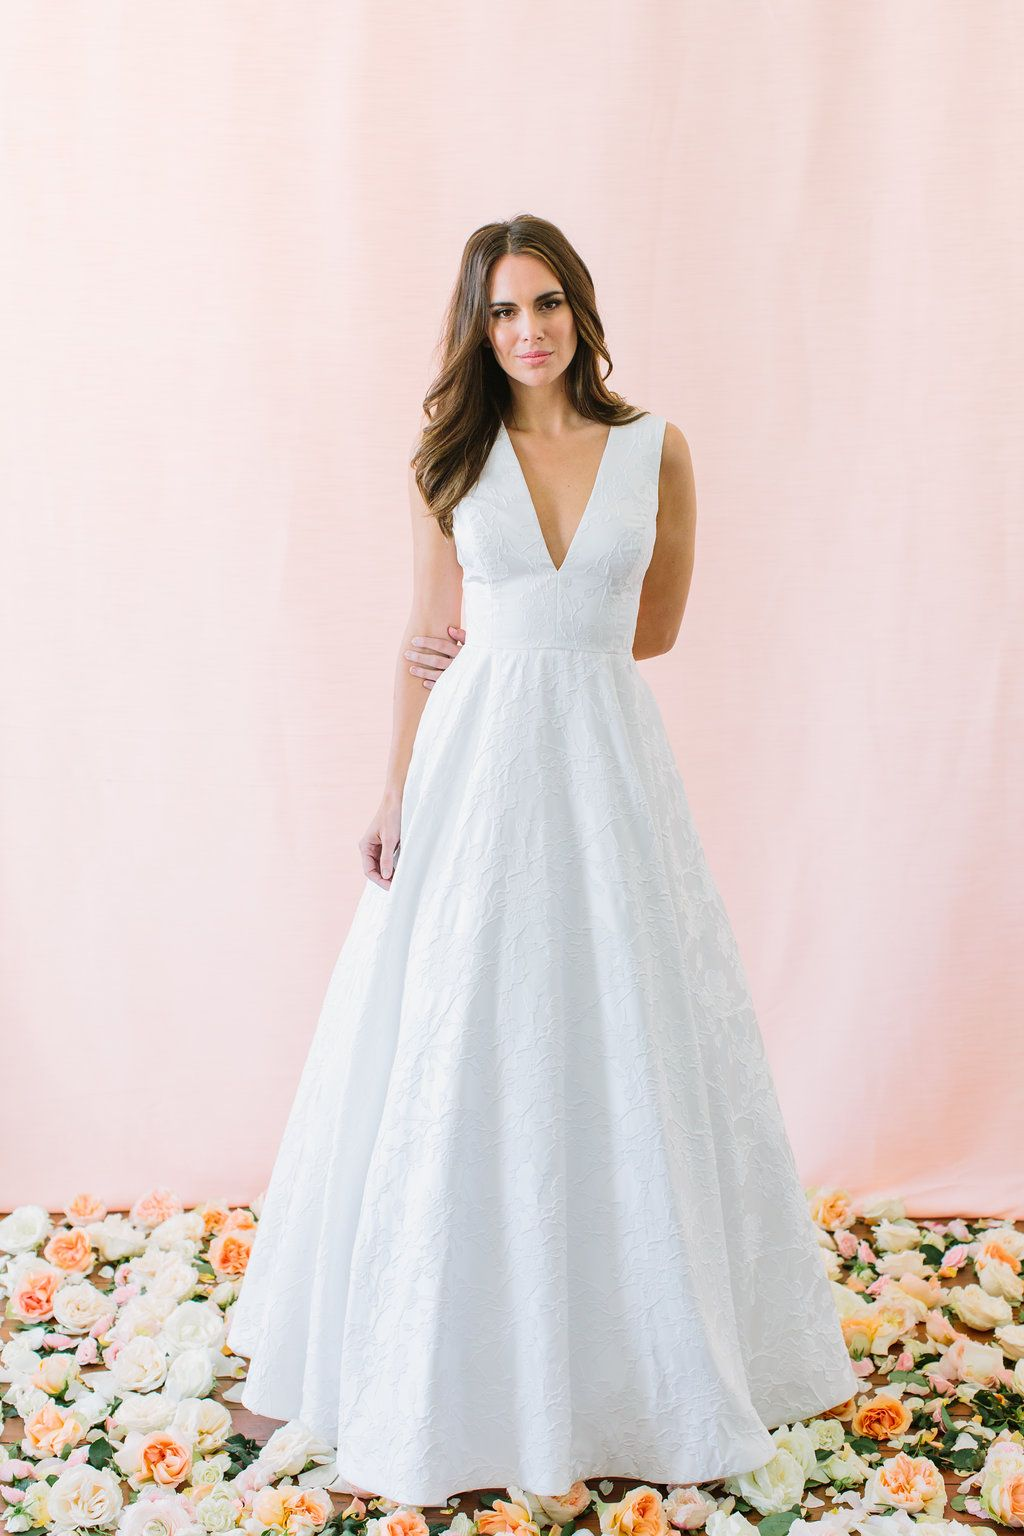 Hughes-V-Neck-Plunging-Ball-Gown-Wedding-Dress-compressor.jpg